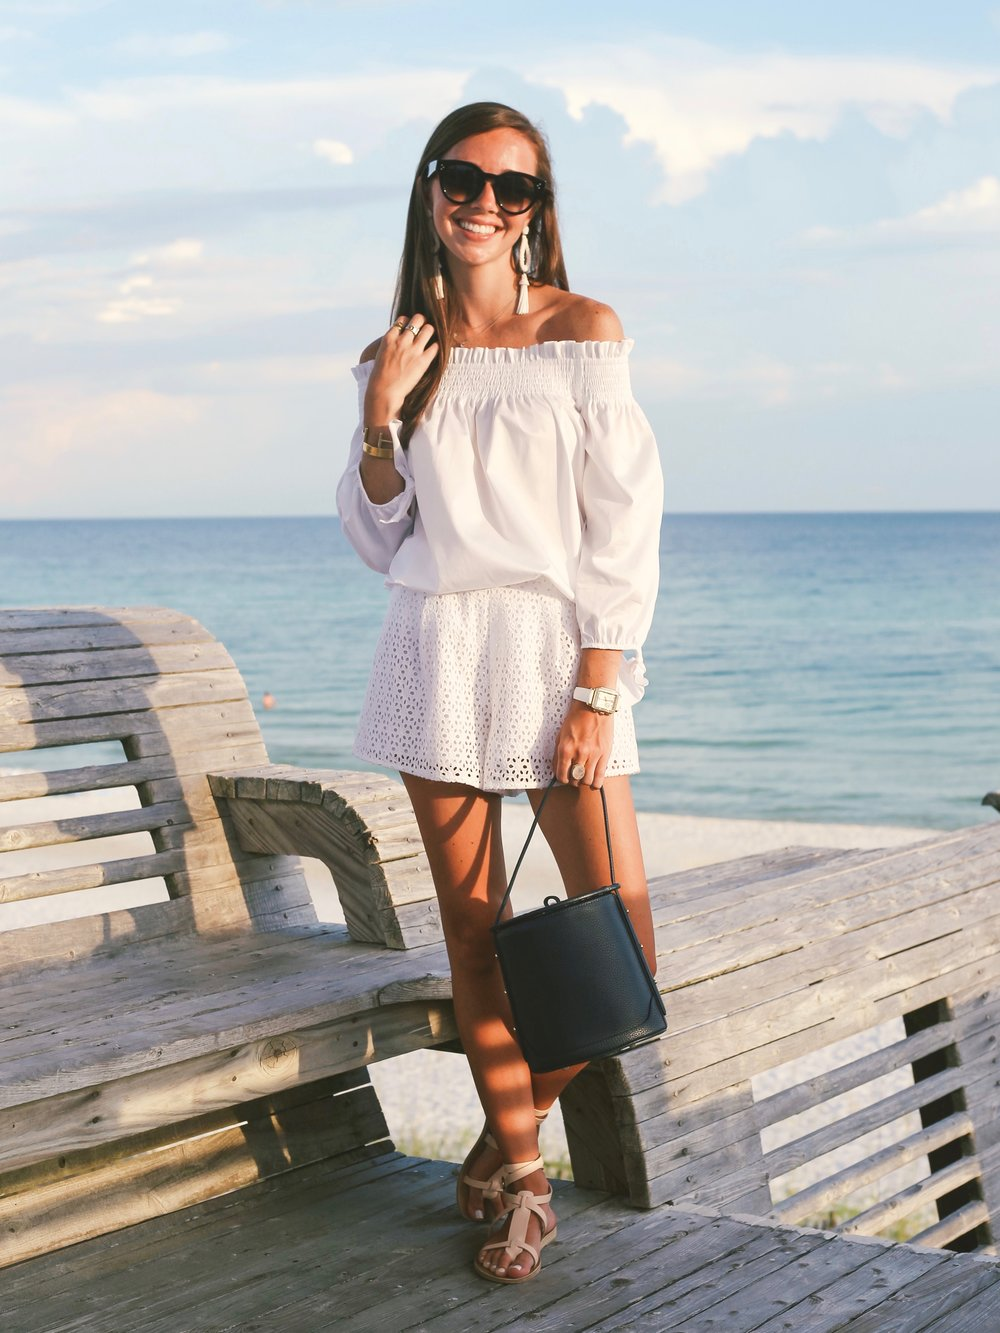 LCB STYLE FASHION BLOGGER SEASIDE FLORIDA 30A (33 of 42).jpg